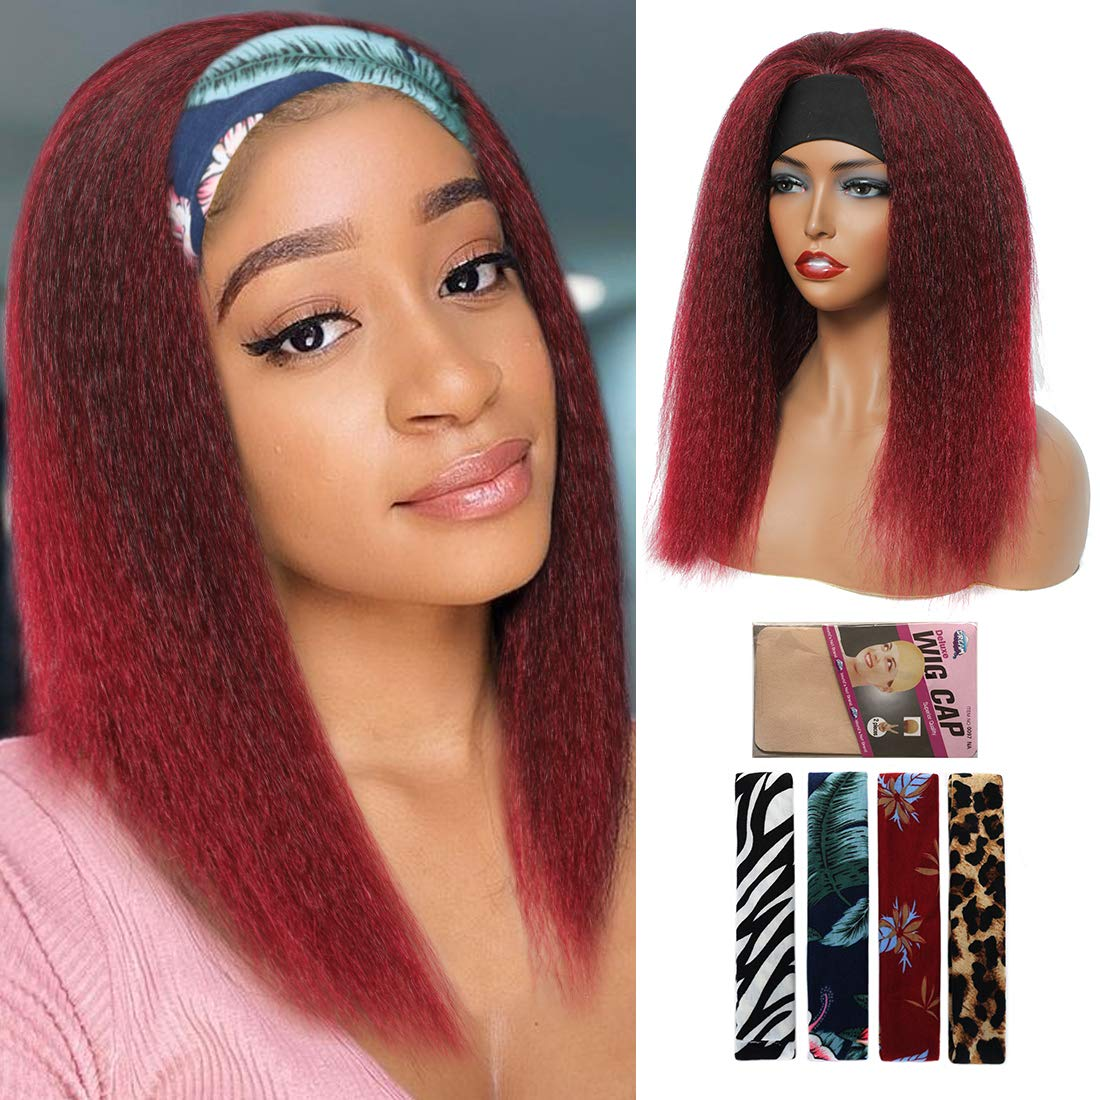 Ombre Kinky Straight Headband Wigs for Women Synthetic 14 inch Headwrap Wigs with Headband Attached Easy to Wear Yaki Wigs for Women Glueless Non Lace Frontal Wig(14 inch, T1B/BUG)